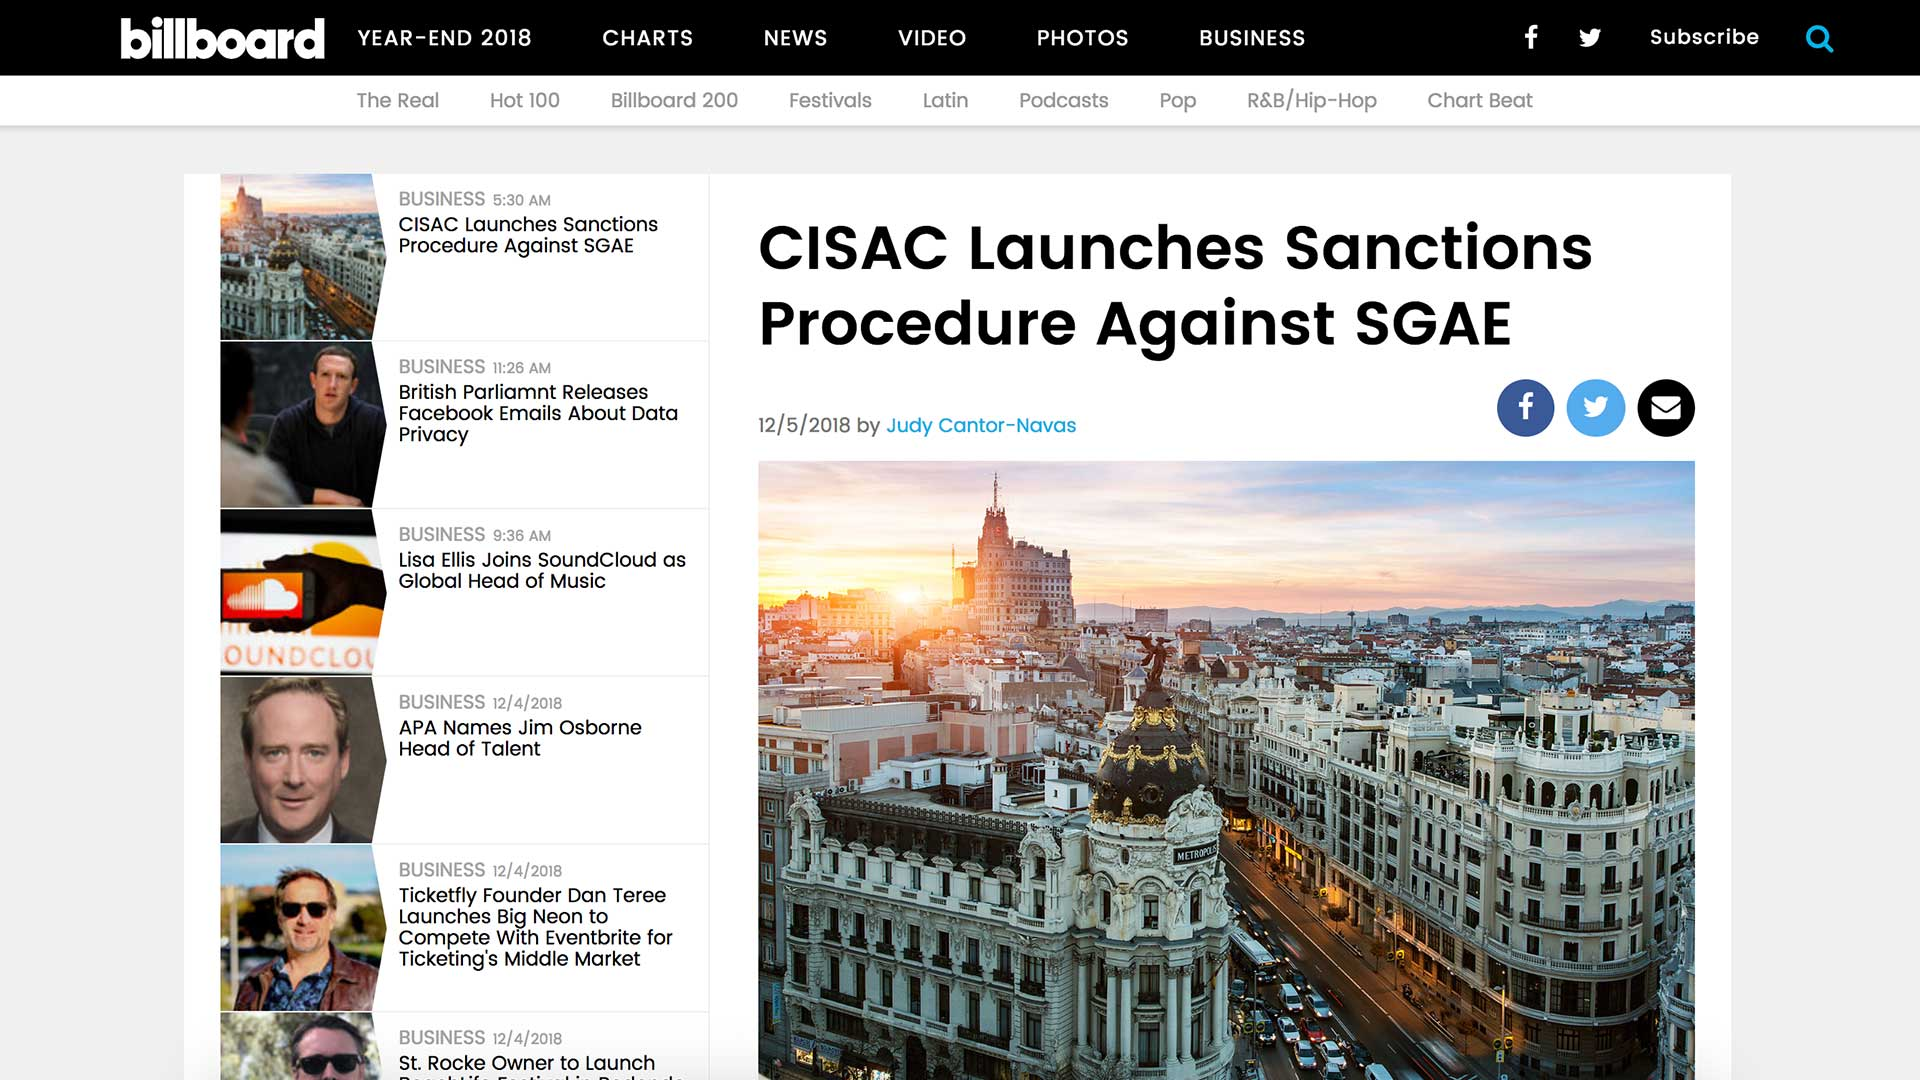 Fairness Rocks News CISAC Launches Sanctions Procedure Against SGAE